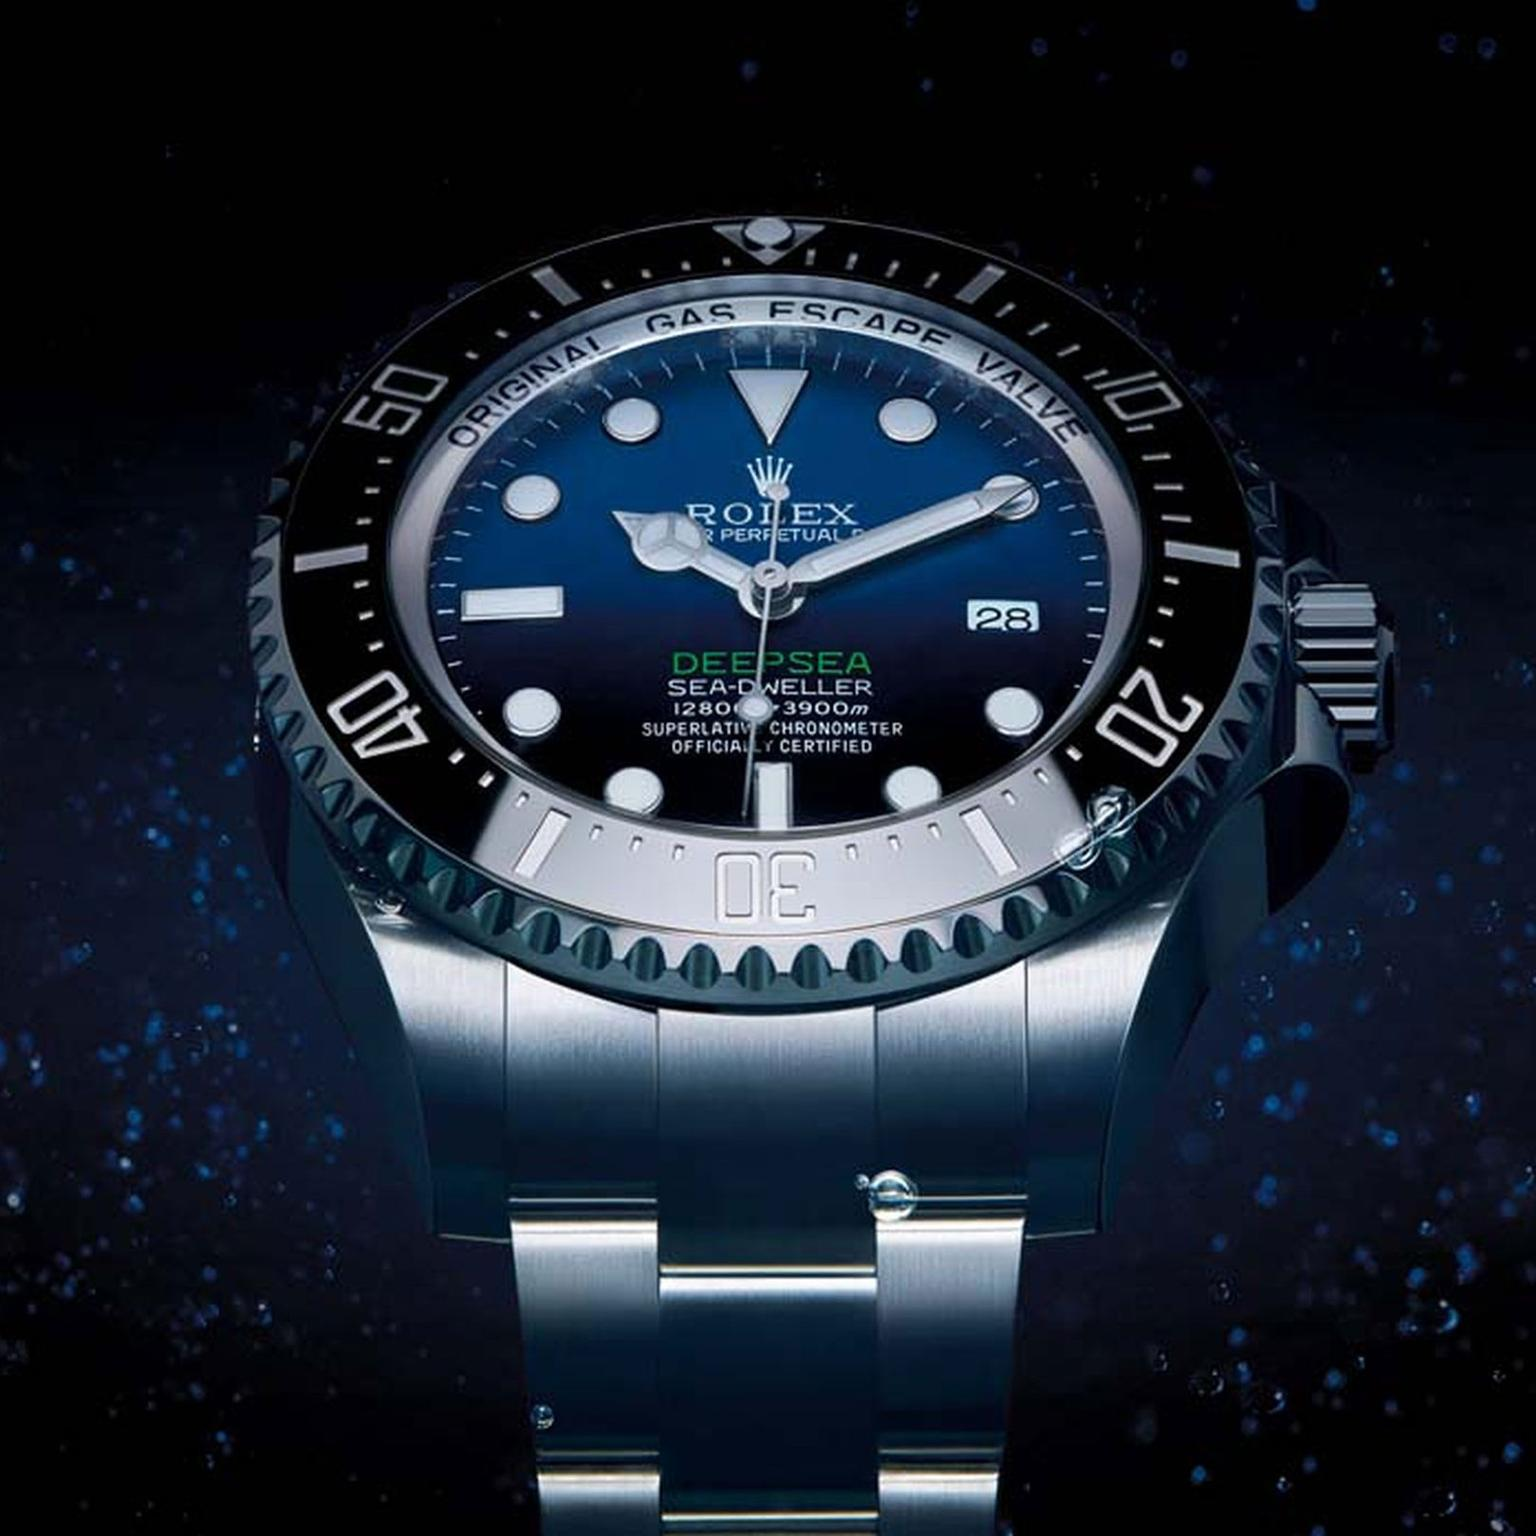 The D-Blue dial on the latest Rolex Deepsea dive watch evokes the changing colours of the water during Cameron's solo descent. Graduating from a brilliant azure blue at the top of the dial, the colour intensifies and darkens to a bottomless black represen